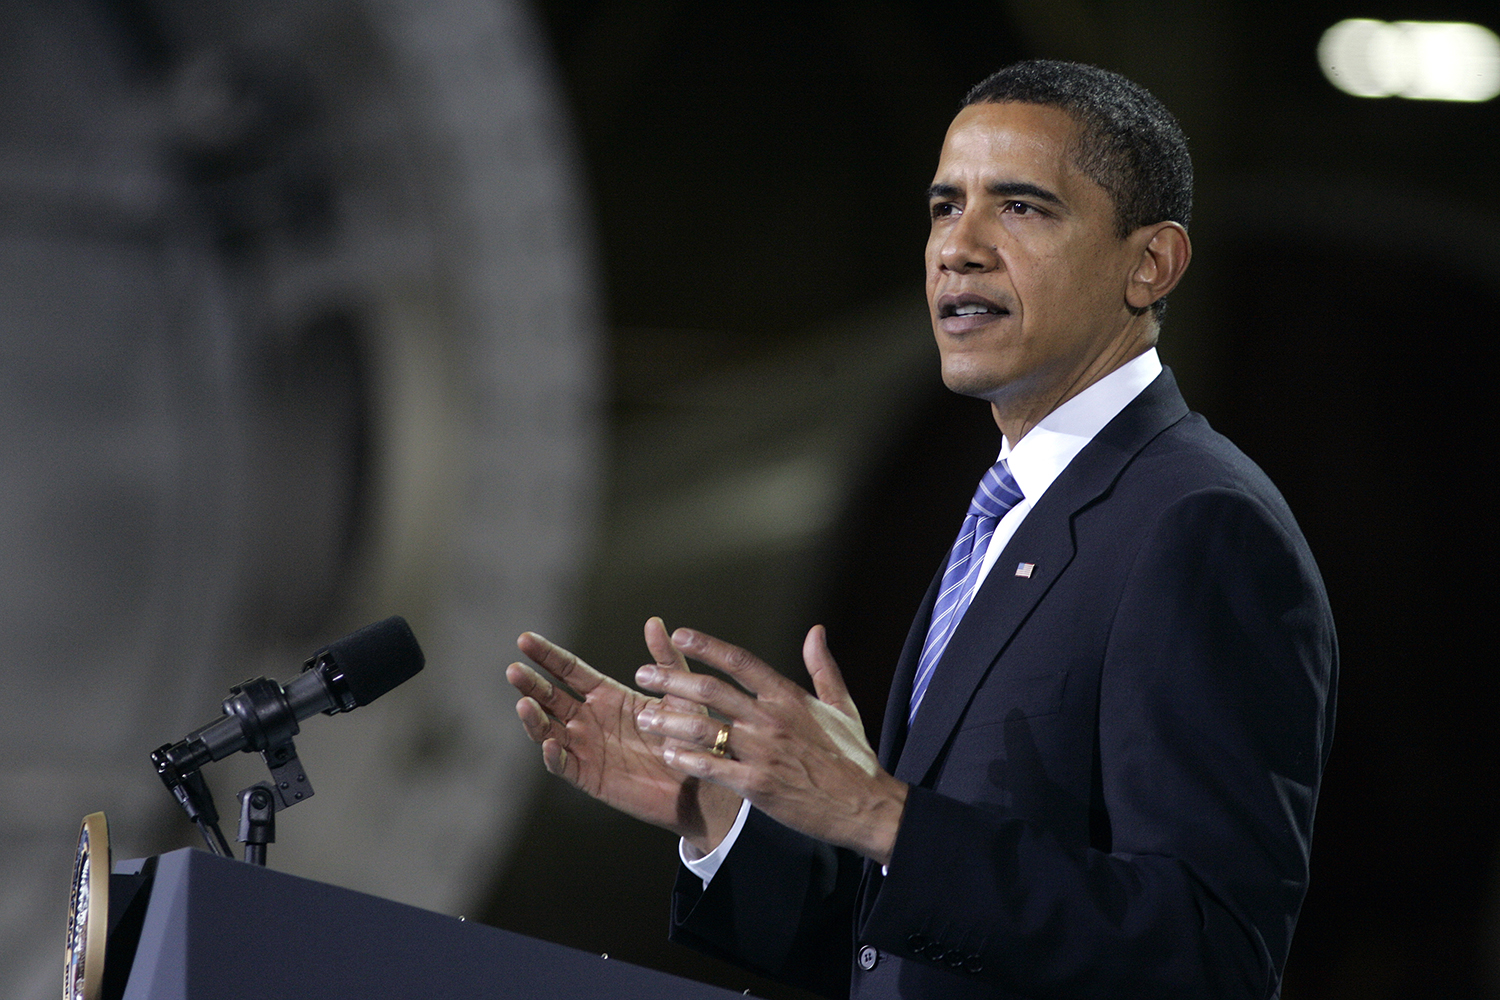 Amy Andrews/The Daily Iowan President Barack Obama discusses energy plans during his visit to Newton, Iowa at the Trinity Structural Towers on April 22, 2009.  The warehouse was once occupied by Maytag before it closed in 2006 and then was bought by Whirlpool